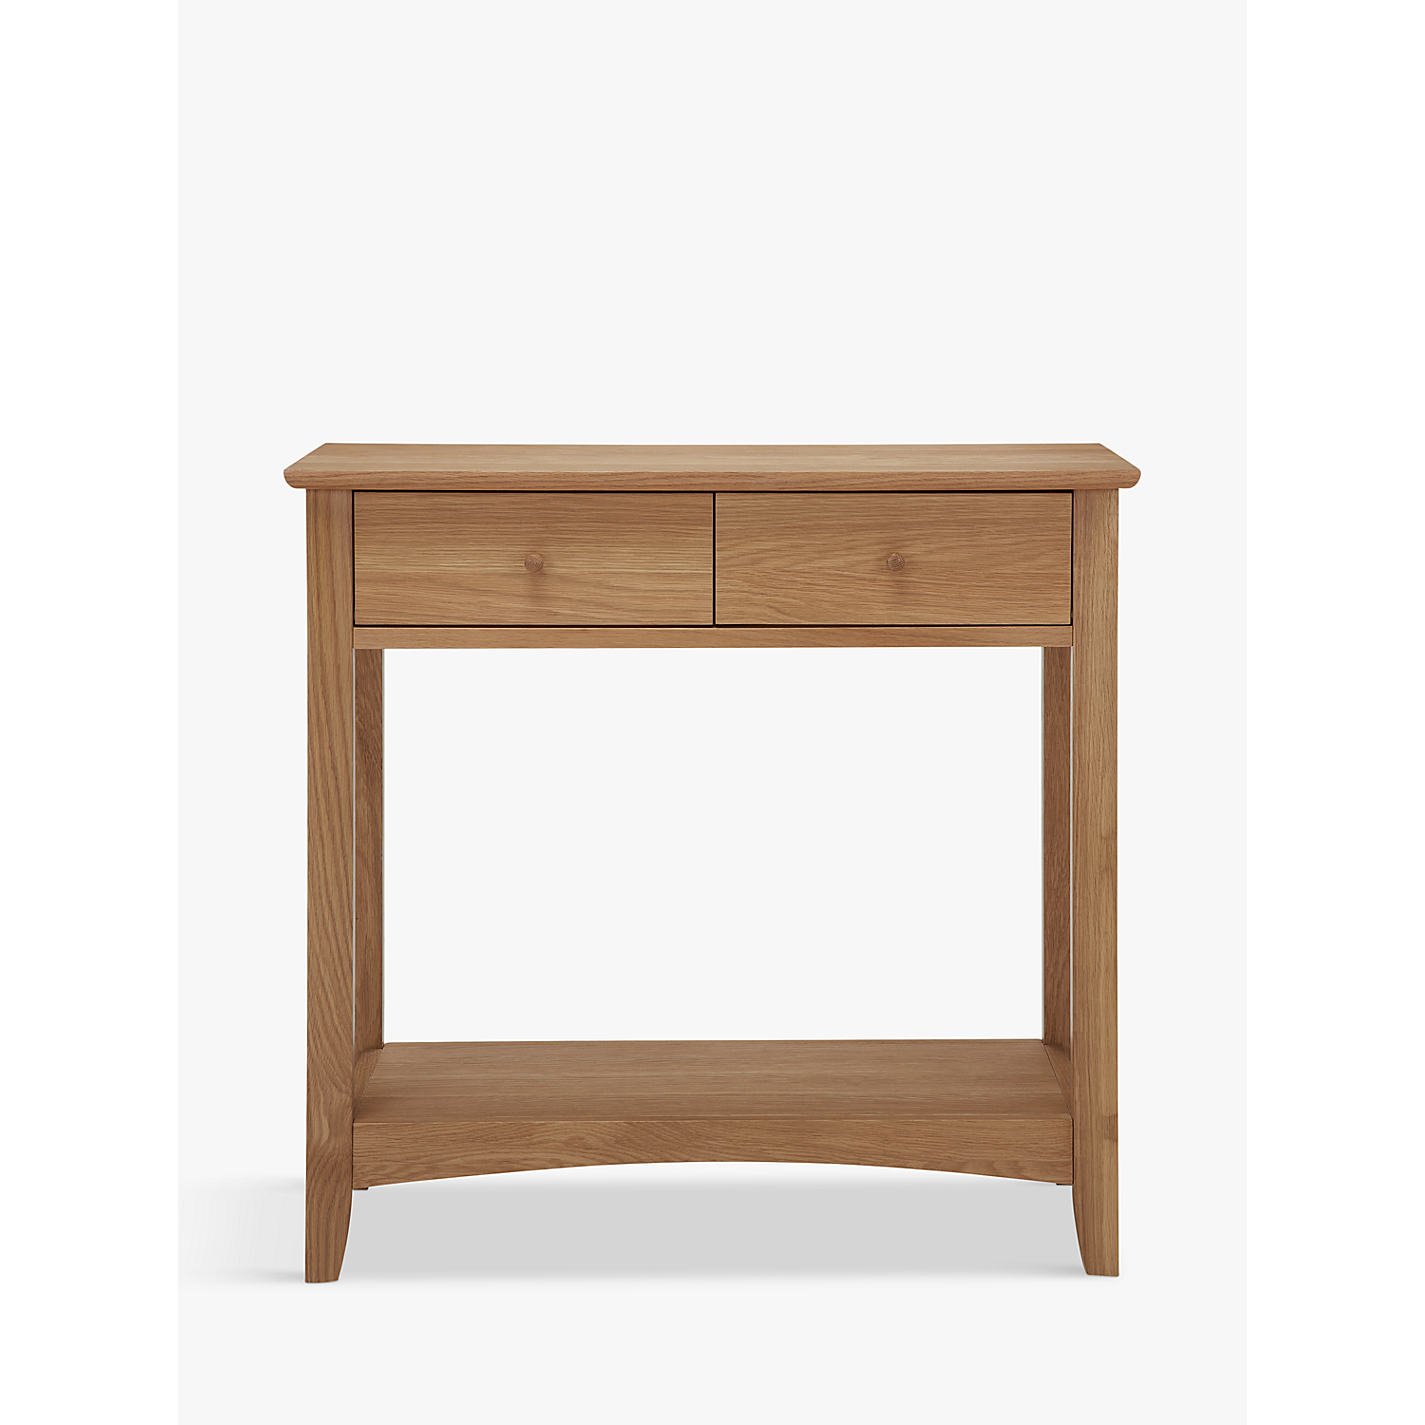 Buy john lewis alba console table john lewis buy john lewis alba console table online at johnlewis geotapseo Image collections